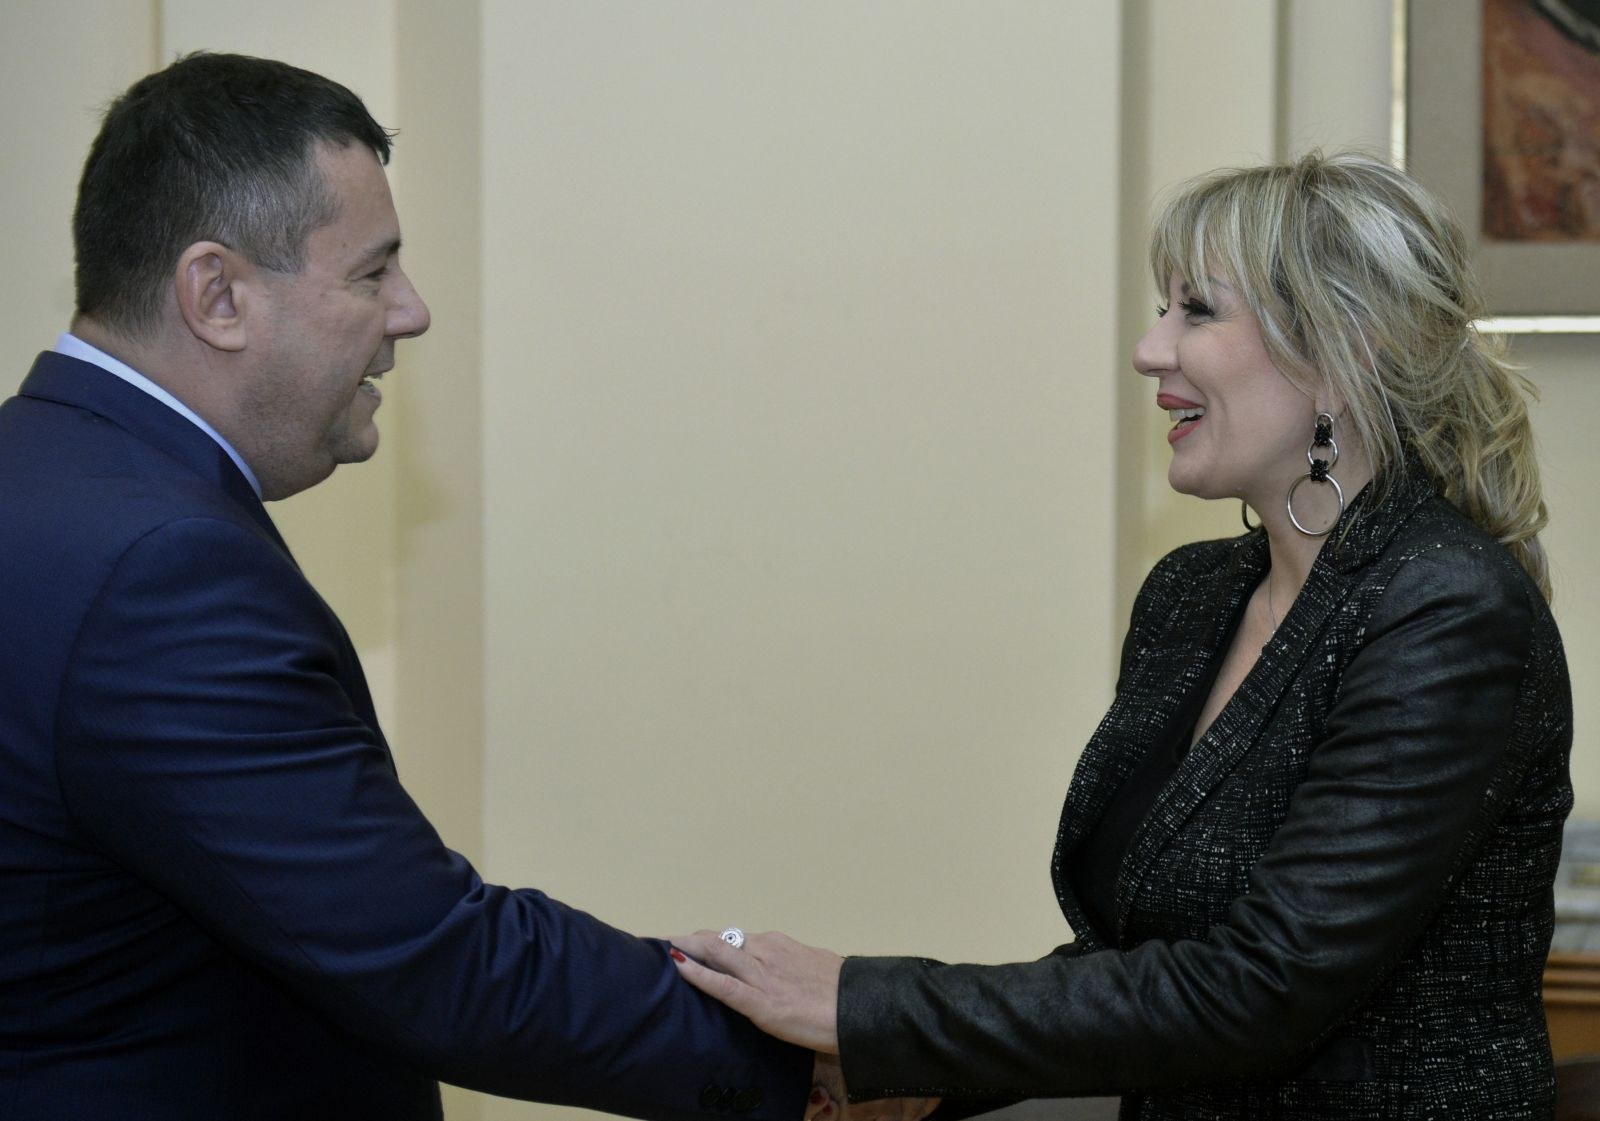 J. Joksimović and Pinter: Accelerate the European integration of Serbia and the region